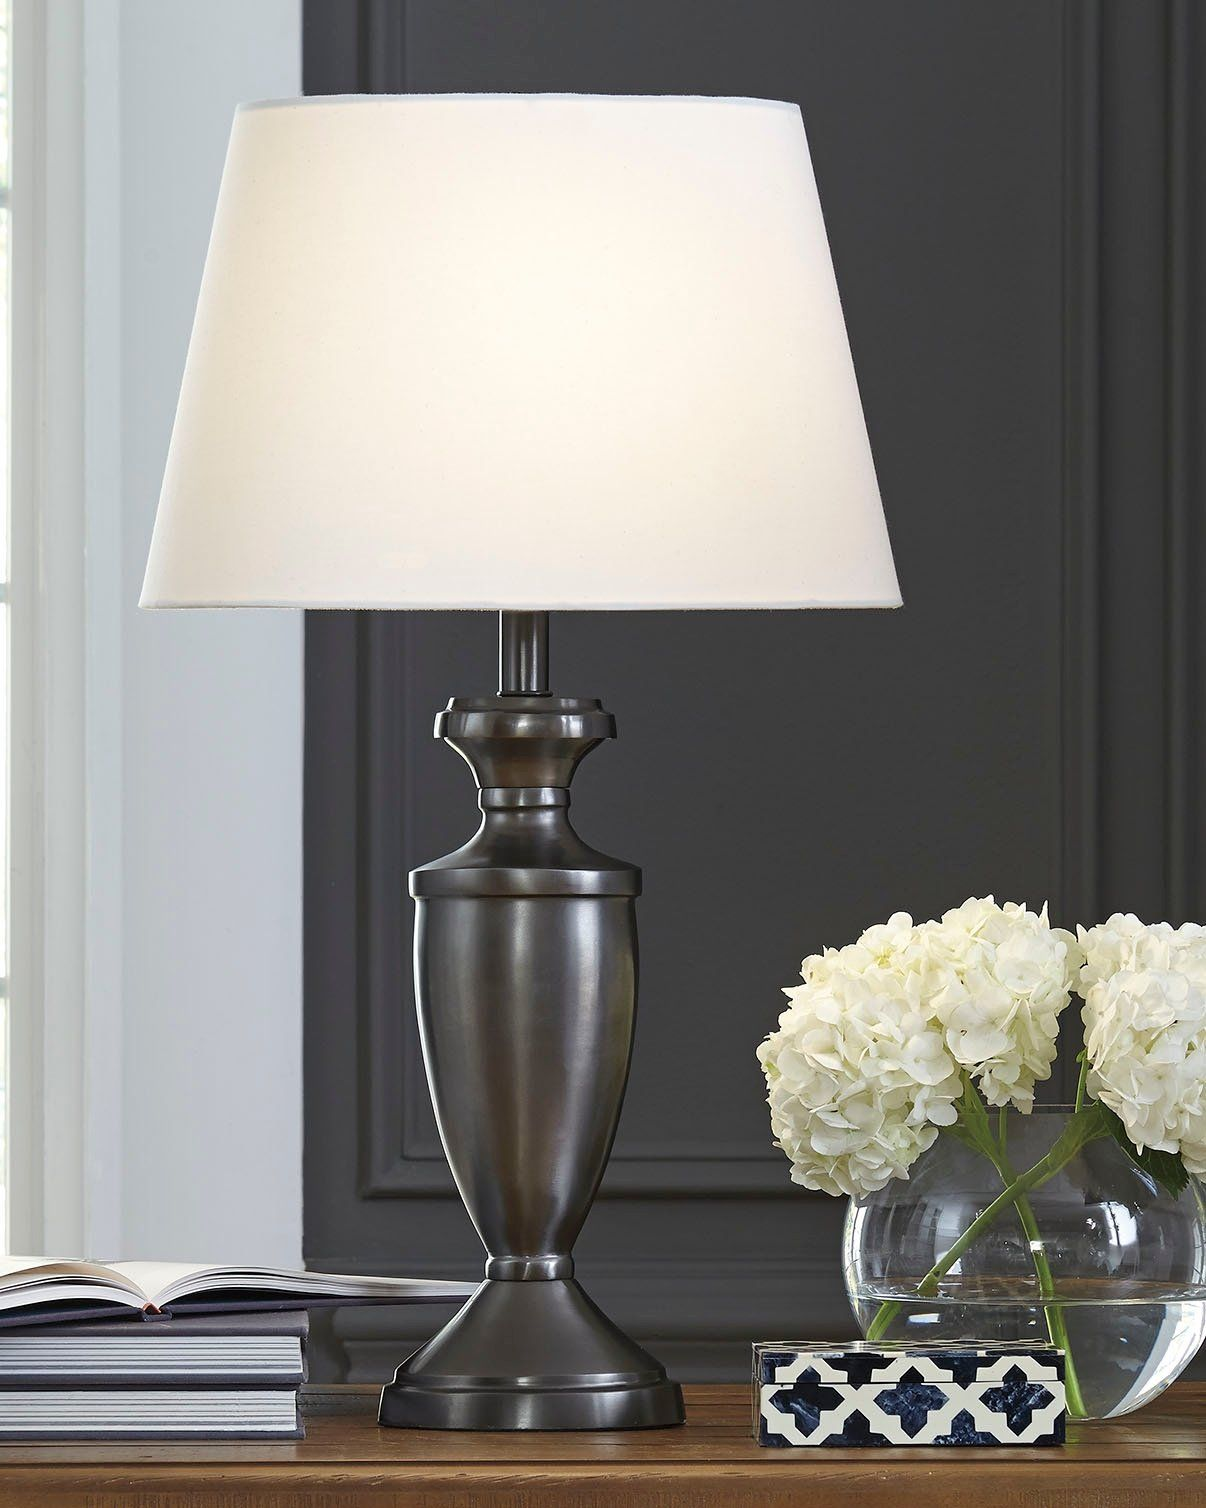 Signature Design By Ashley L204034 Ander Table Lamp Set Of 2 Black Nickel Finish Continue To The Product At The Metal Table Lamps Table Lamp Sets Table Lamp